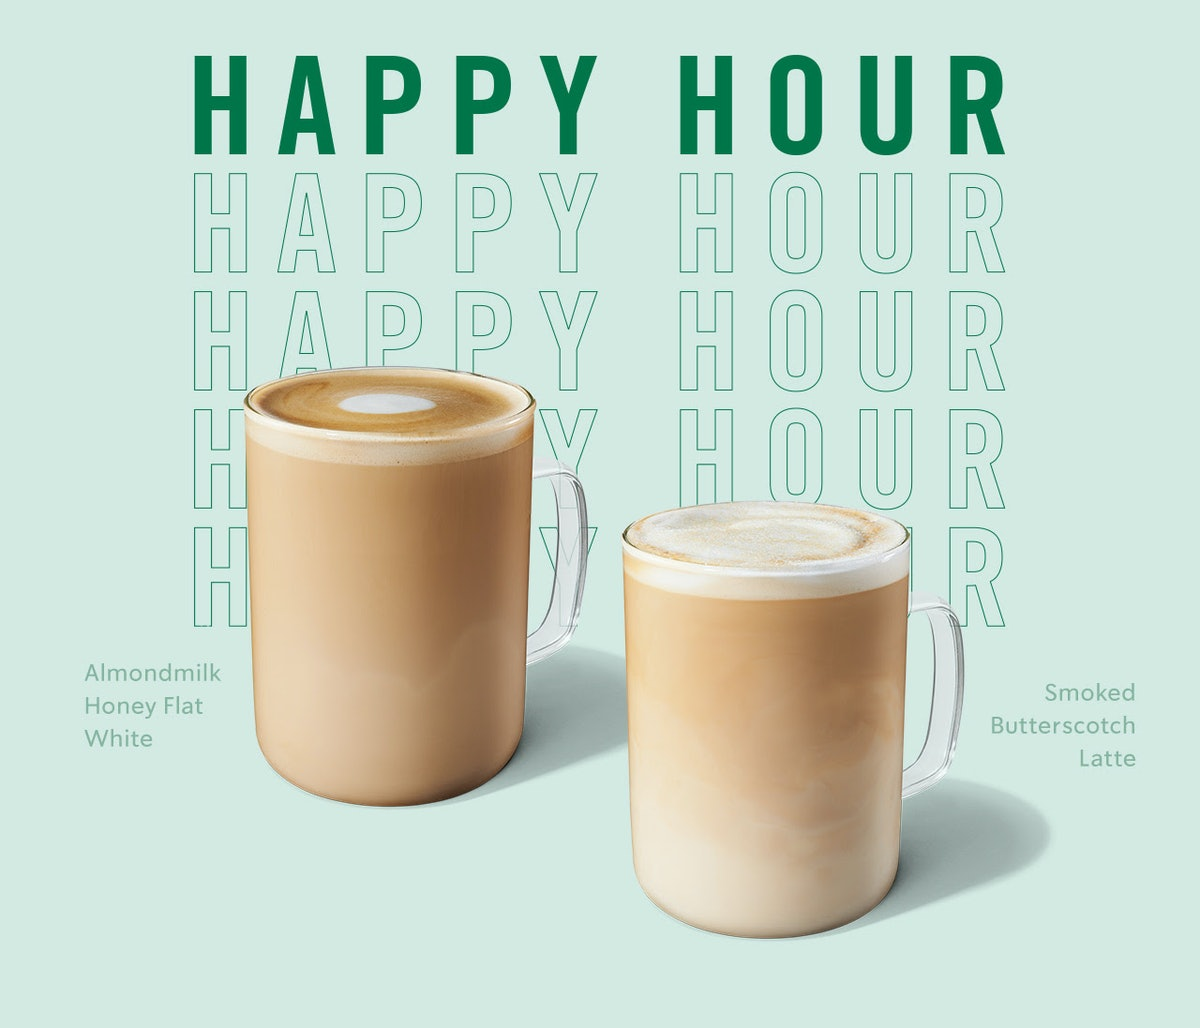 Starbucks' Jan. 23 Happy Hour Is A BOGO Deal that can get you a free grande drink.